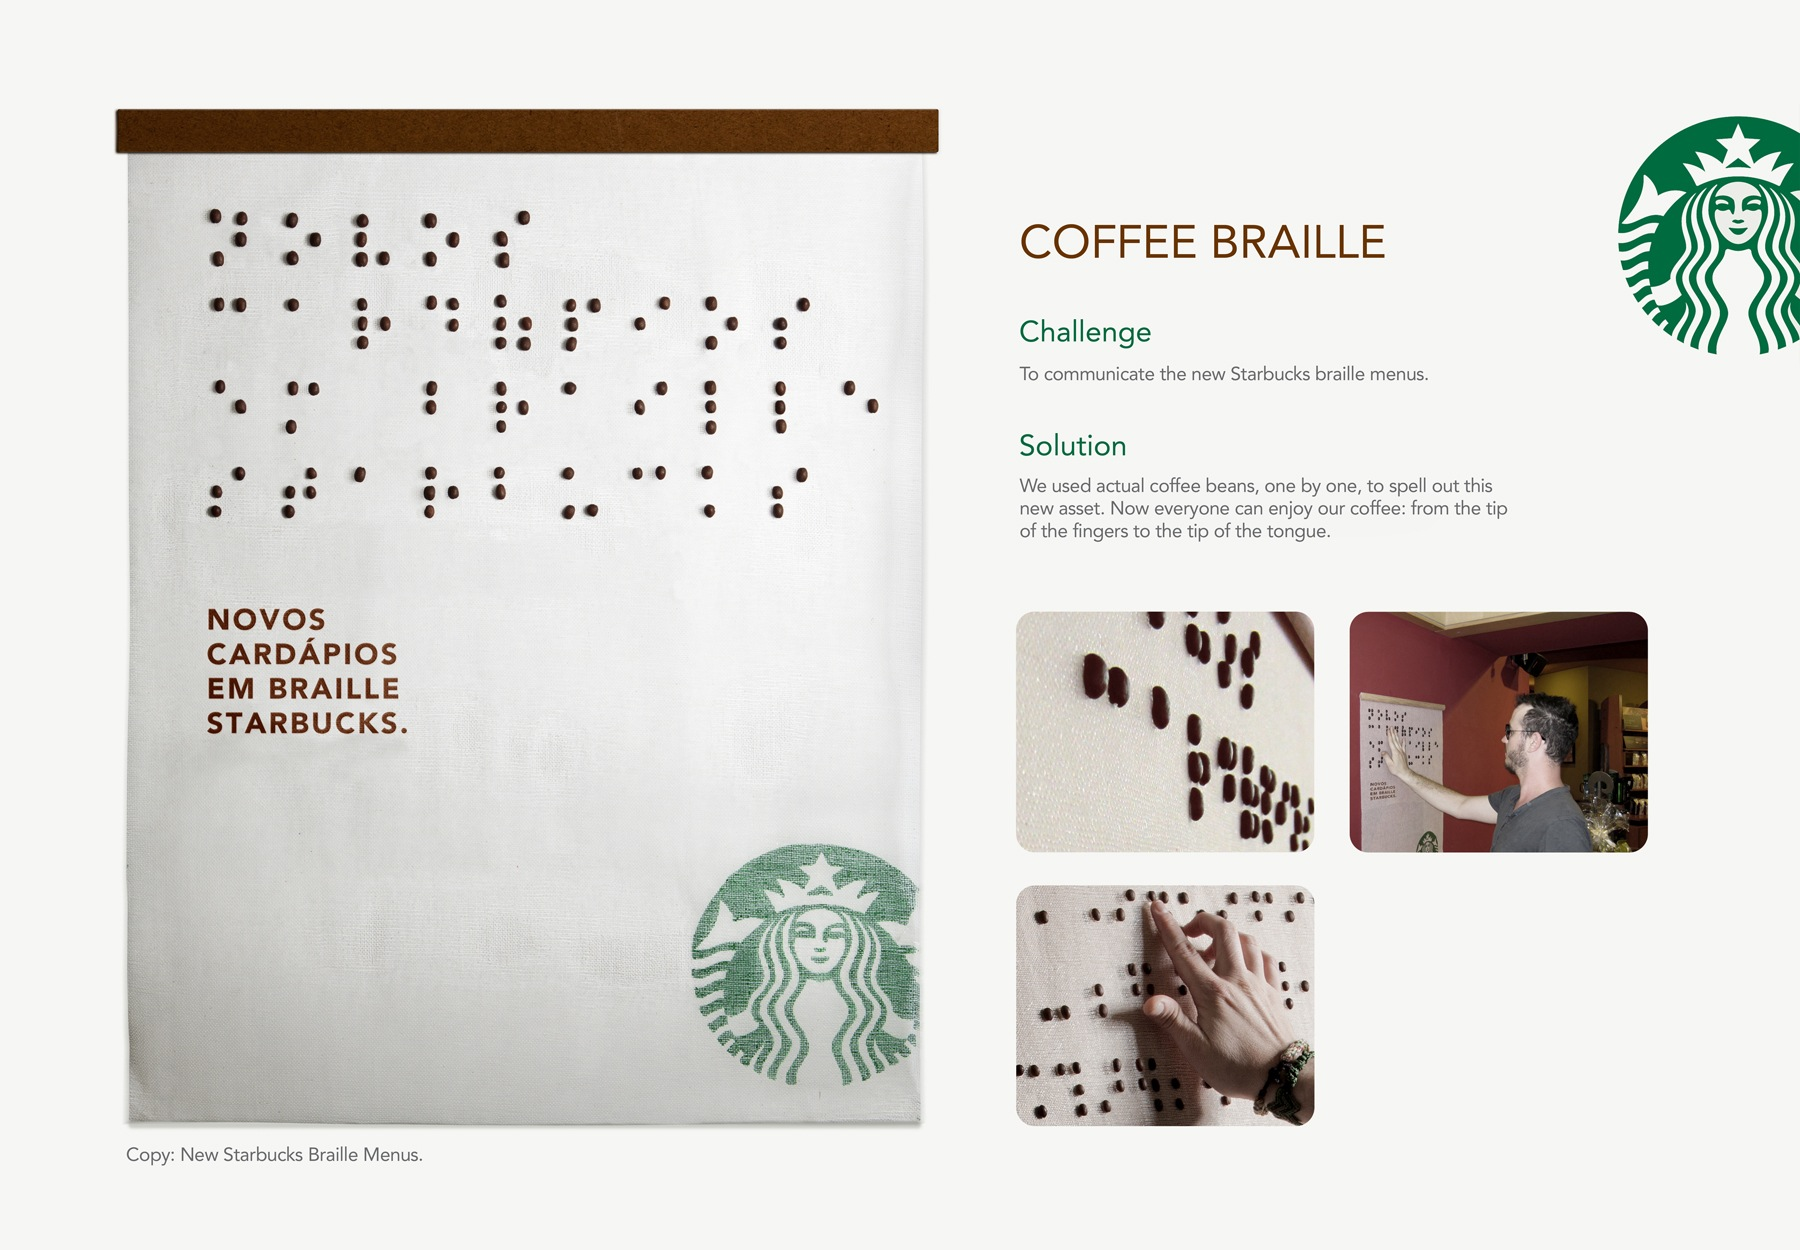 Starbucks-Coffee-Braille.jpg